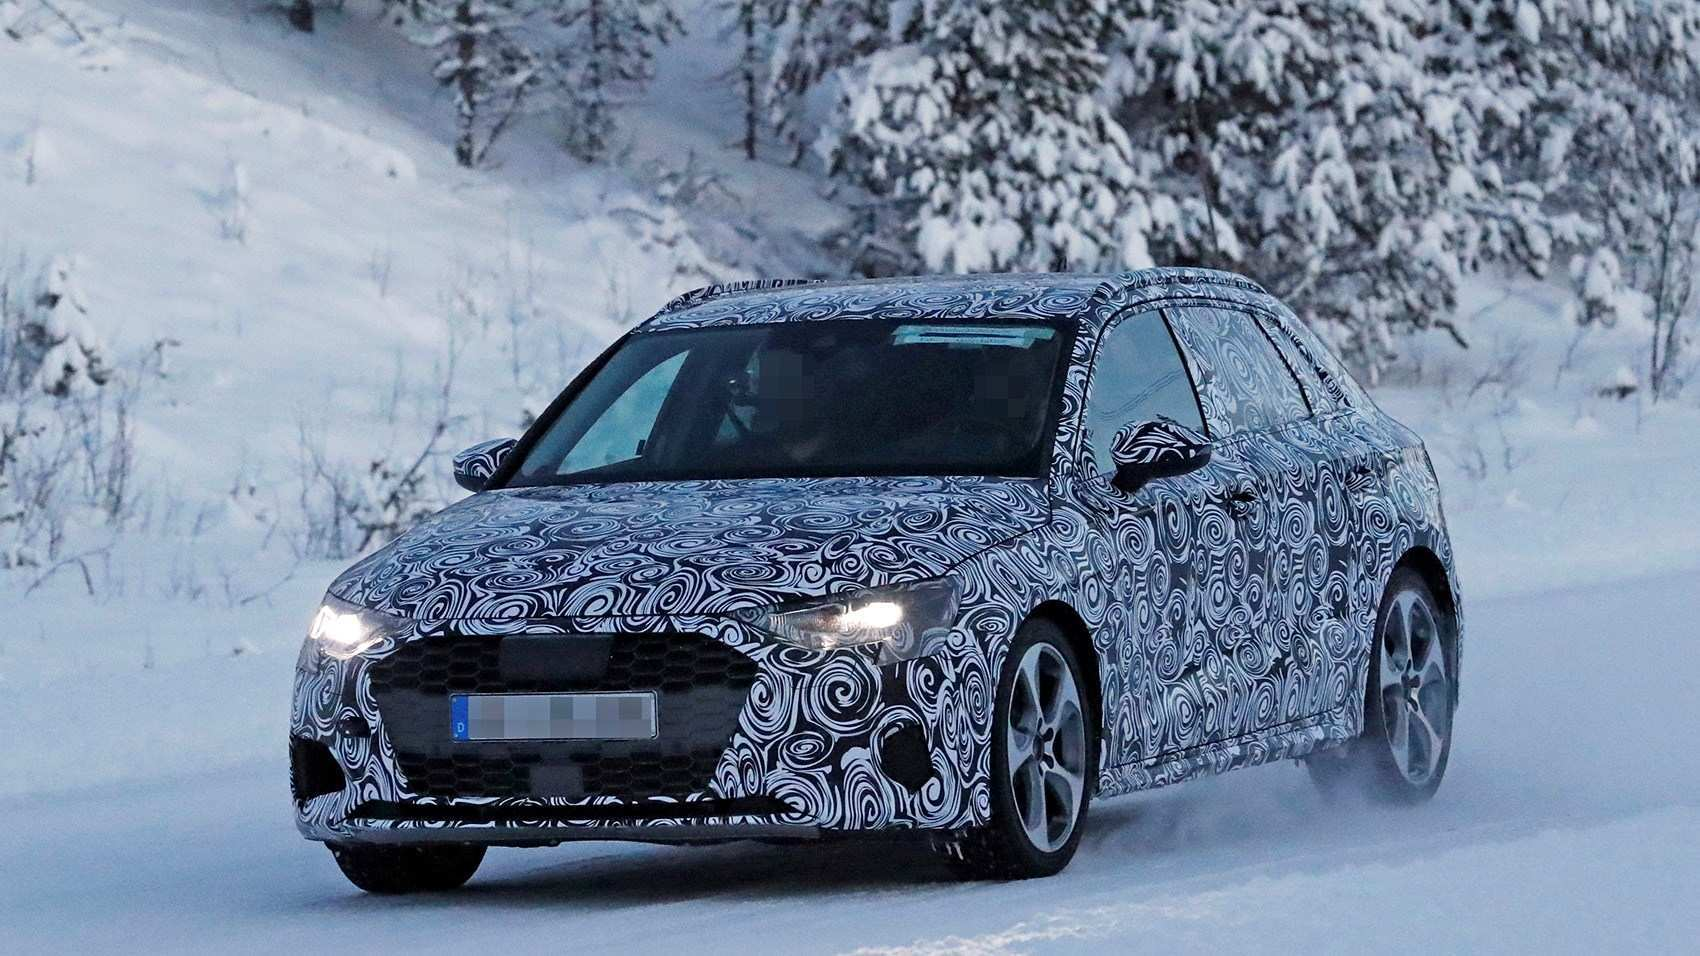 77 Gallery of The Audi 2019 Changes Spy Shoot Performance and New Engine for The Audi 2019 Changes Spy Shoot